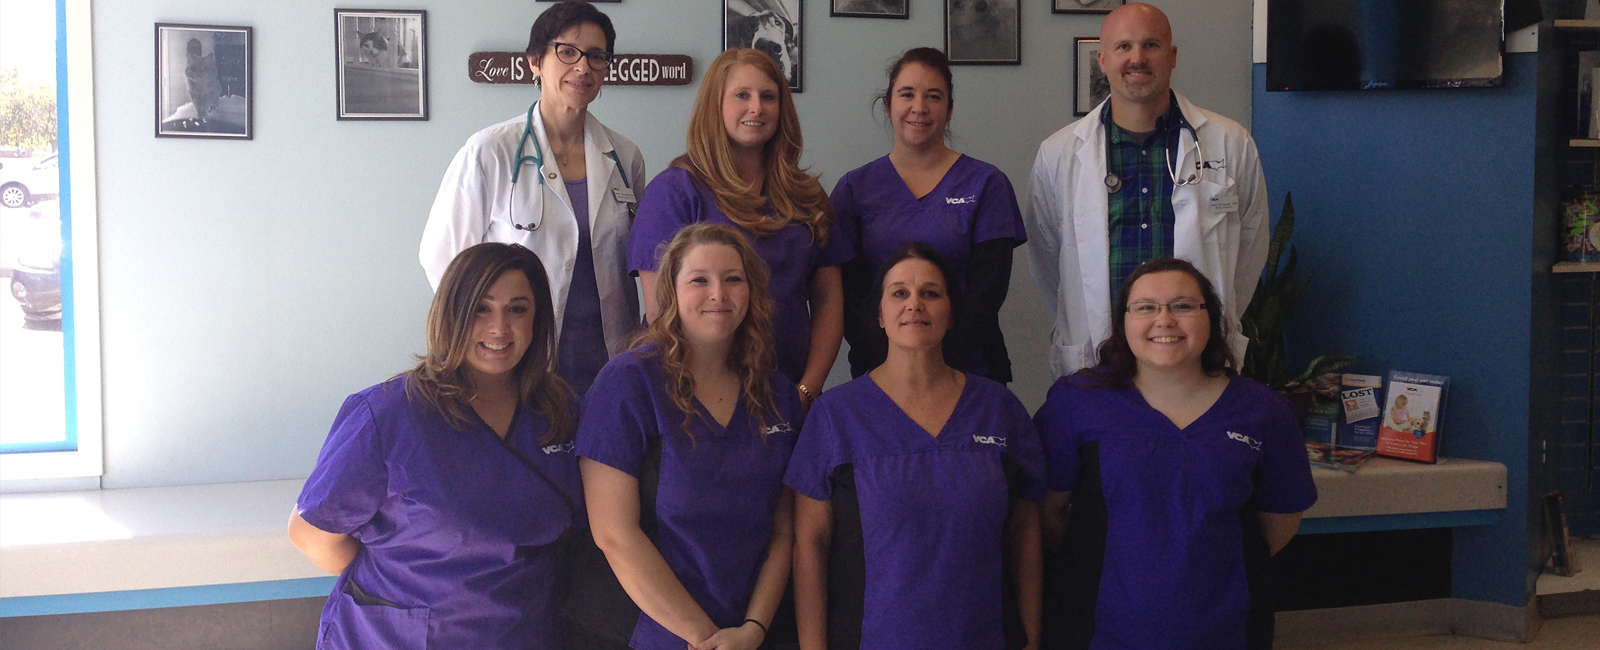 Team Picture of VCA St Clair Shores Animal Hospital